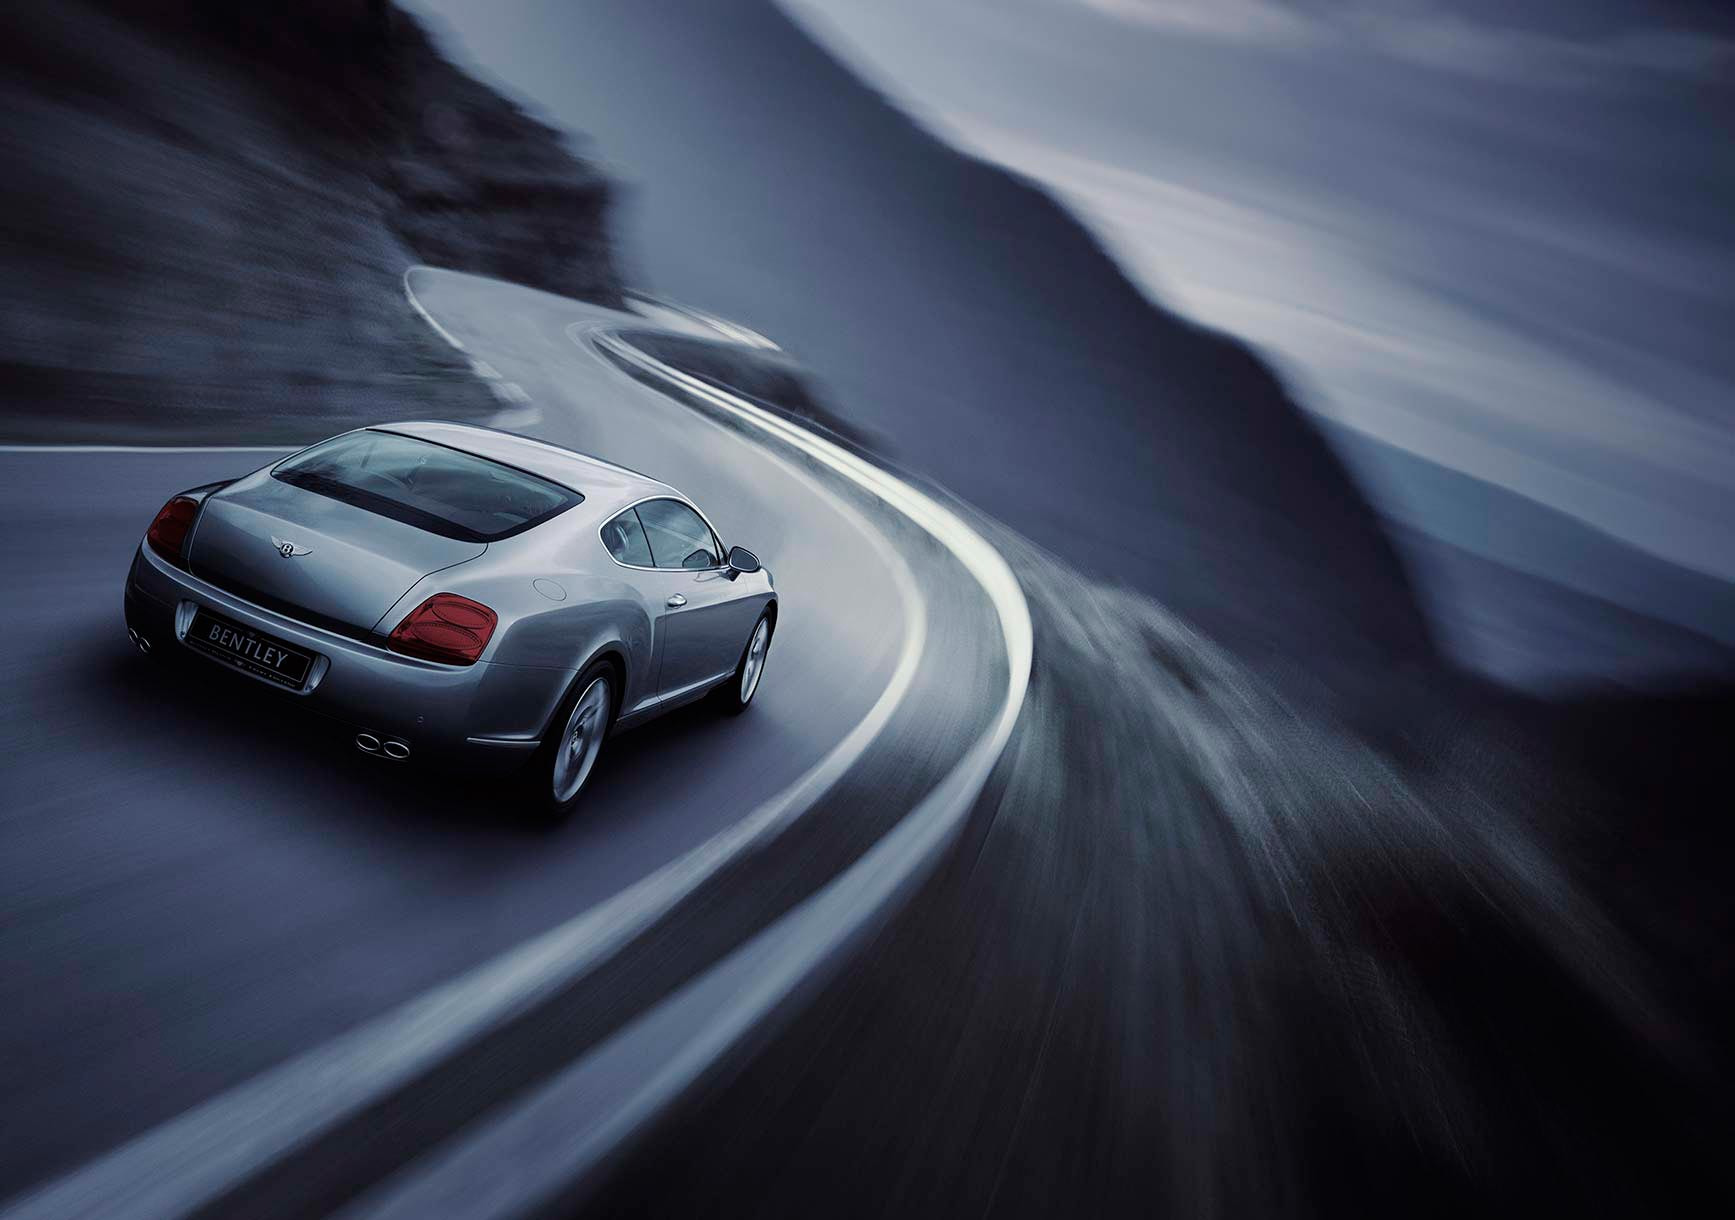 Photograph Bentley Continental Spain by Nigel Harniman on 500px